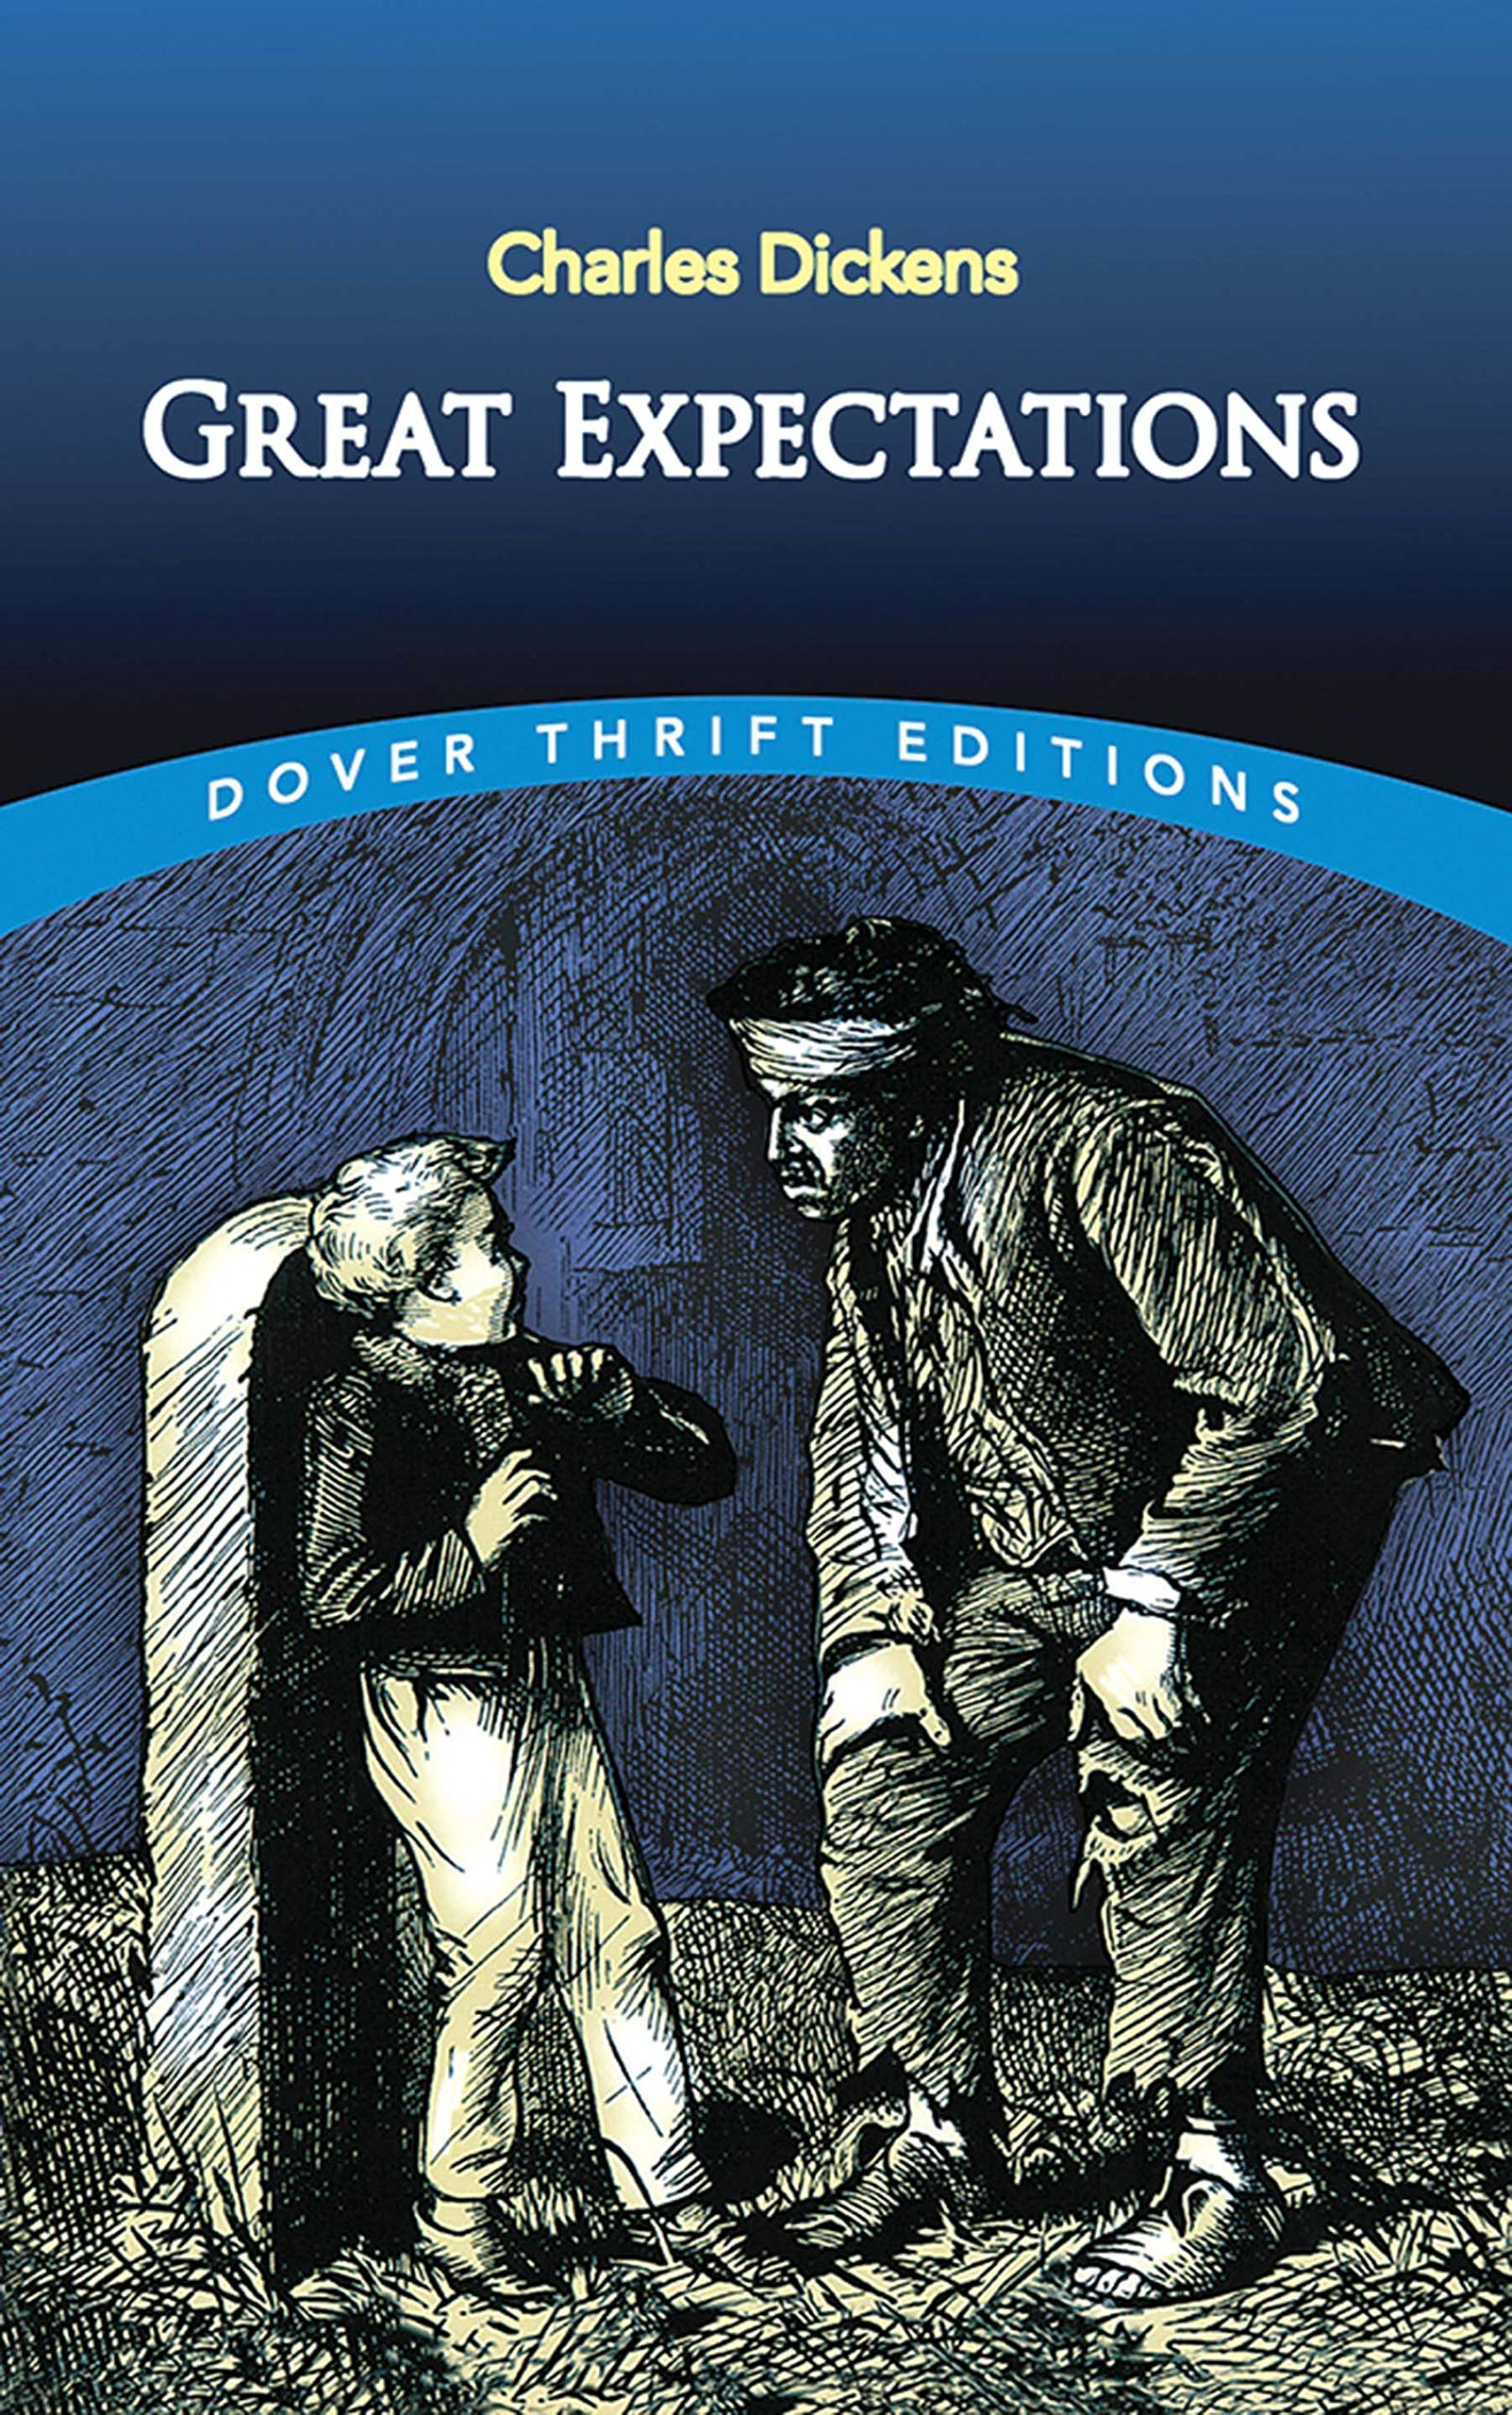 Great Expectations (Dover Thrift Editions): Charles Dickens: 9780486415864:  Amazon.com: Books